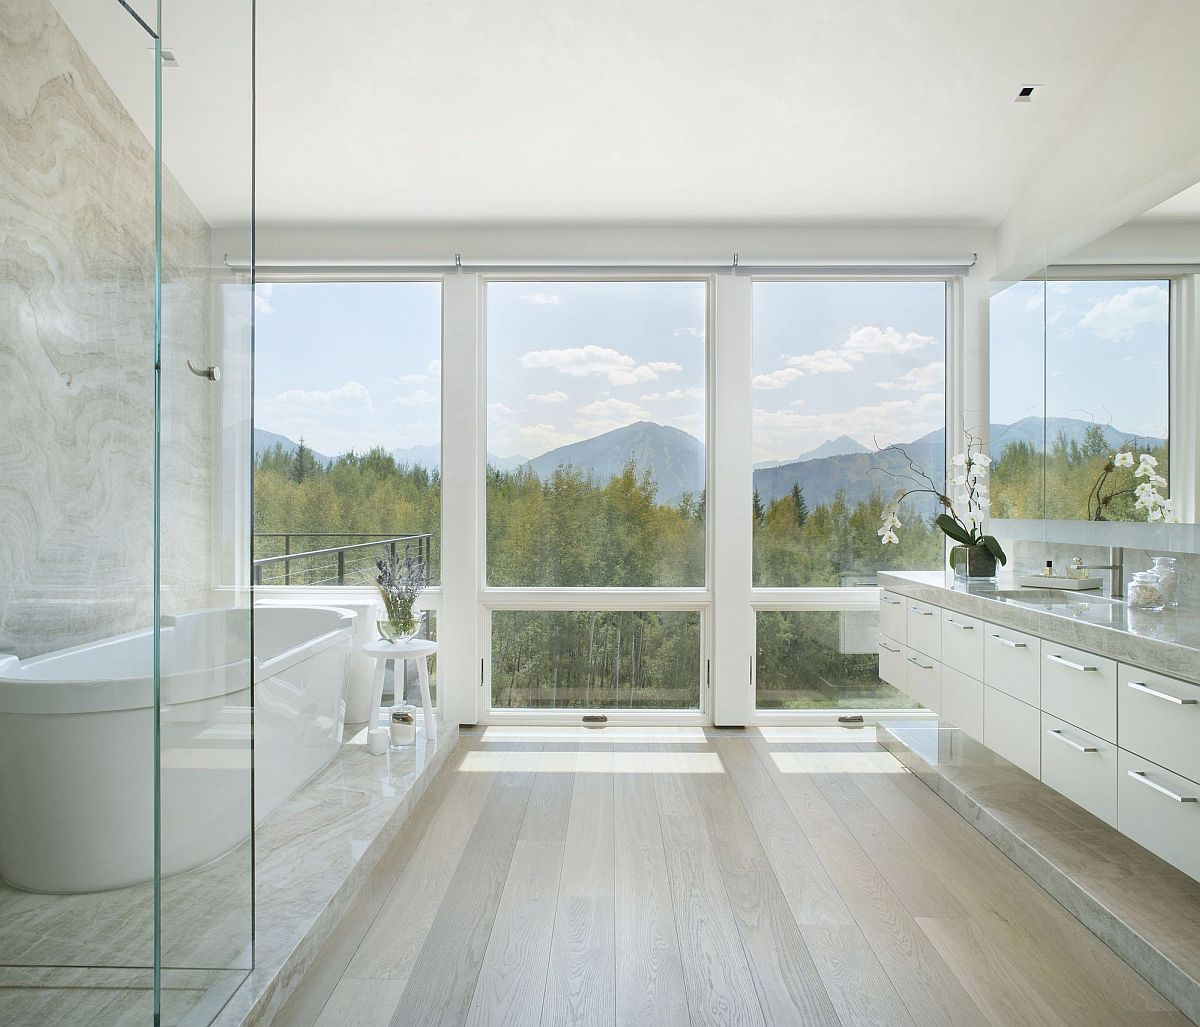 Marble and wood bathroom in white offers a lovely monochromatic backdrop